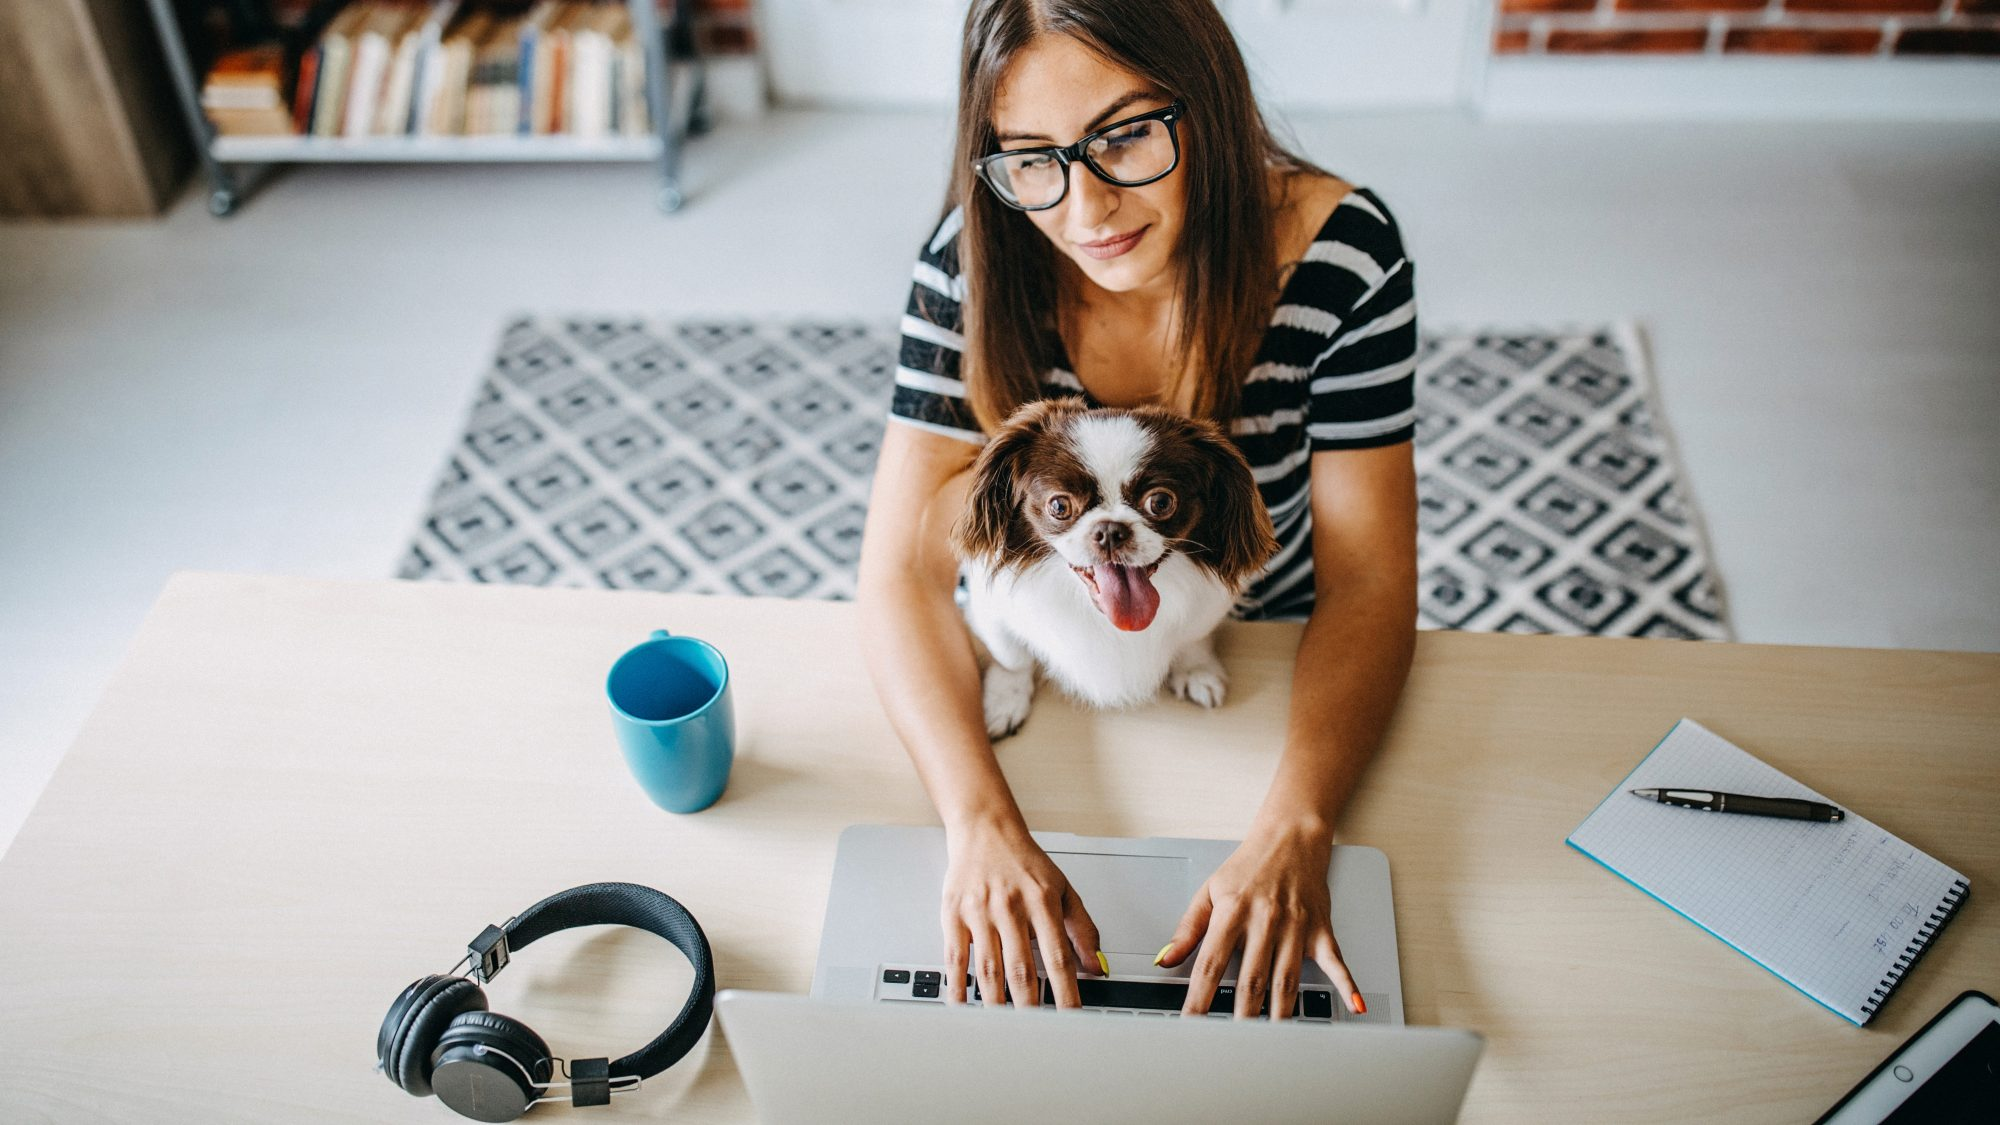 How to Ask Your Boss for a More Permanent or Flexible Work-From-Home Situation (Even After the Pandemic Ends)